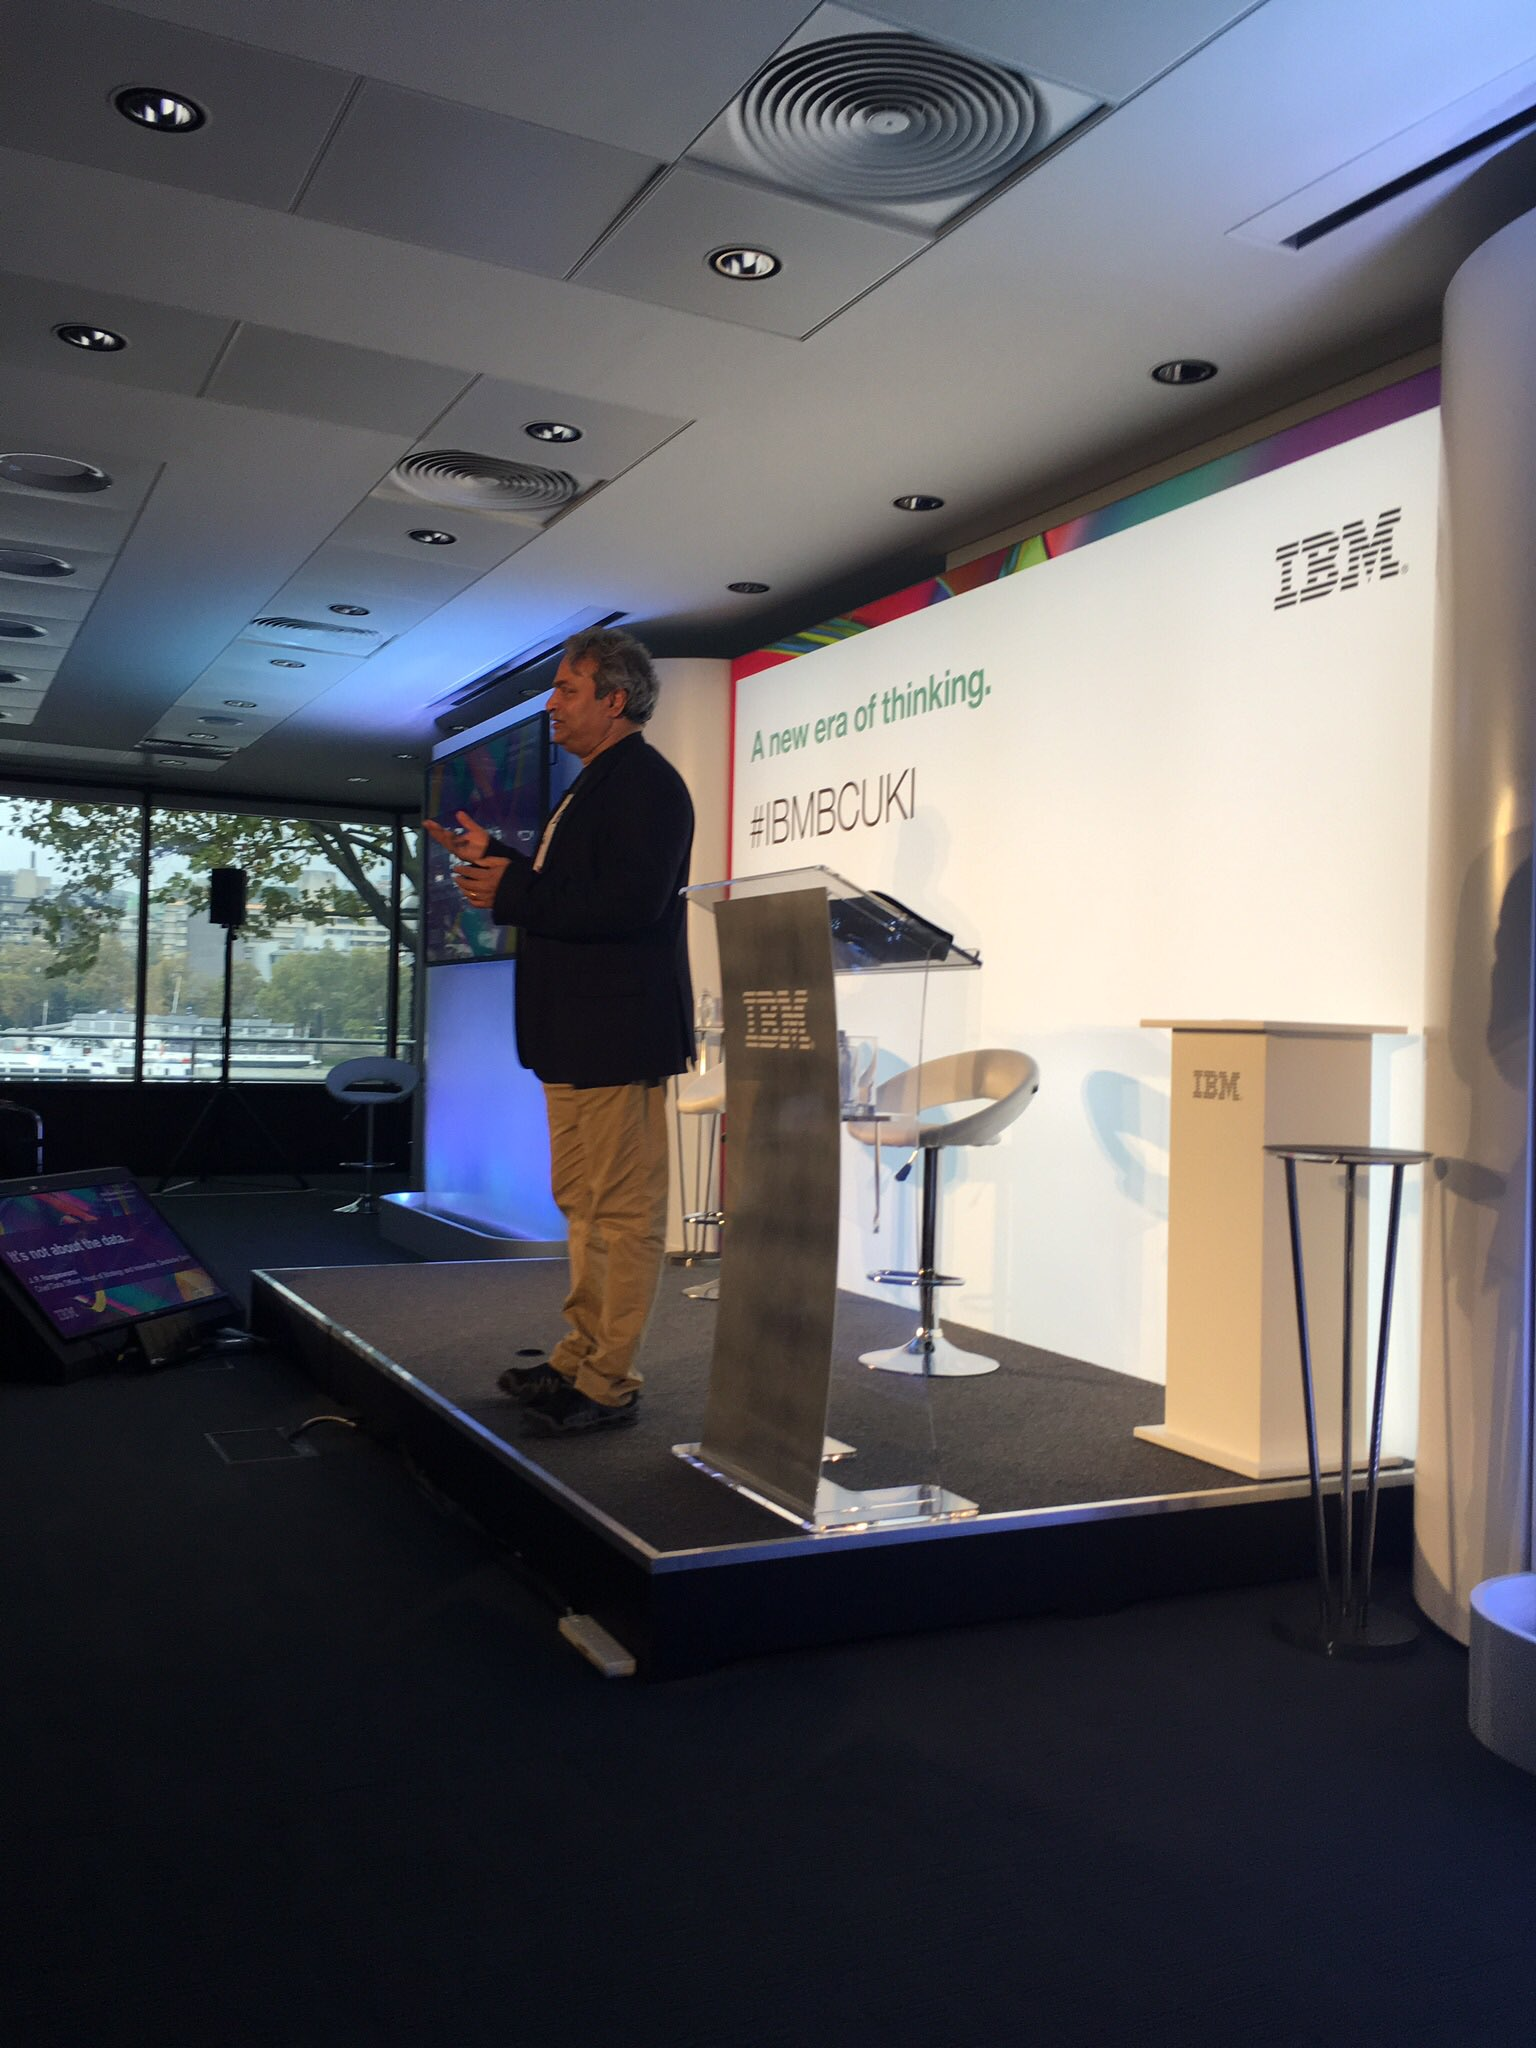 Now up @jobsworth from @DeutscheBank talking the importance of context to data. Spot on 👍🏼👍🏼 #IBMBCUKI https://t.co/iGj4phA0gp